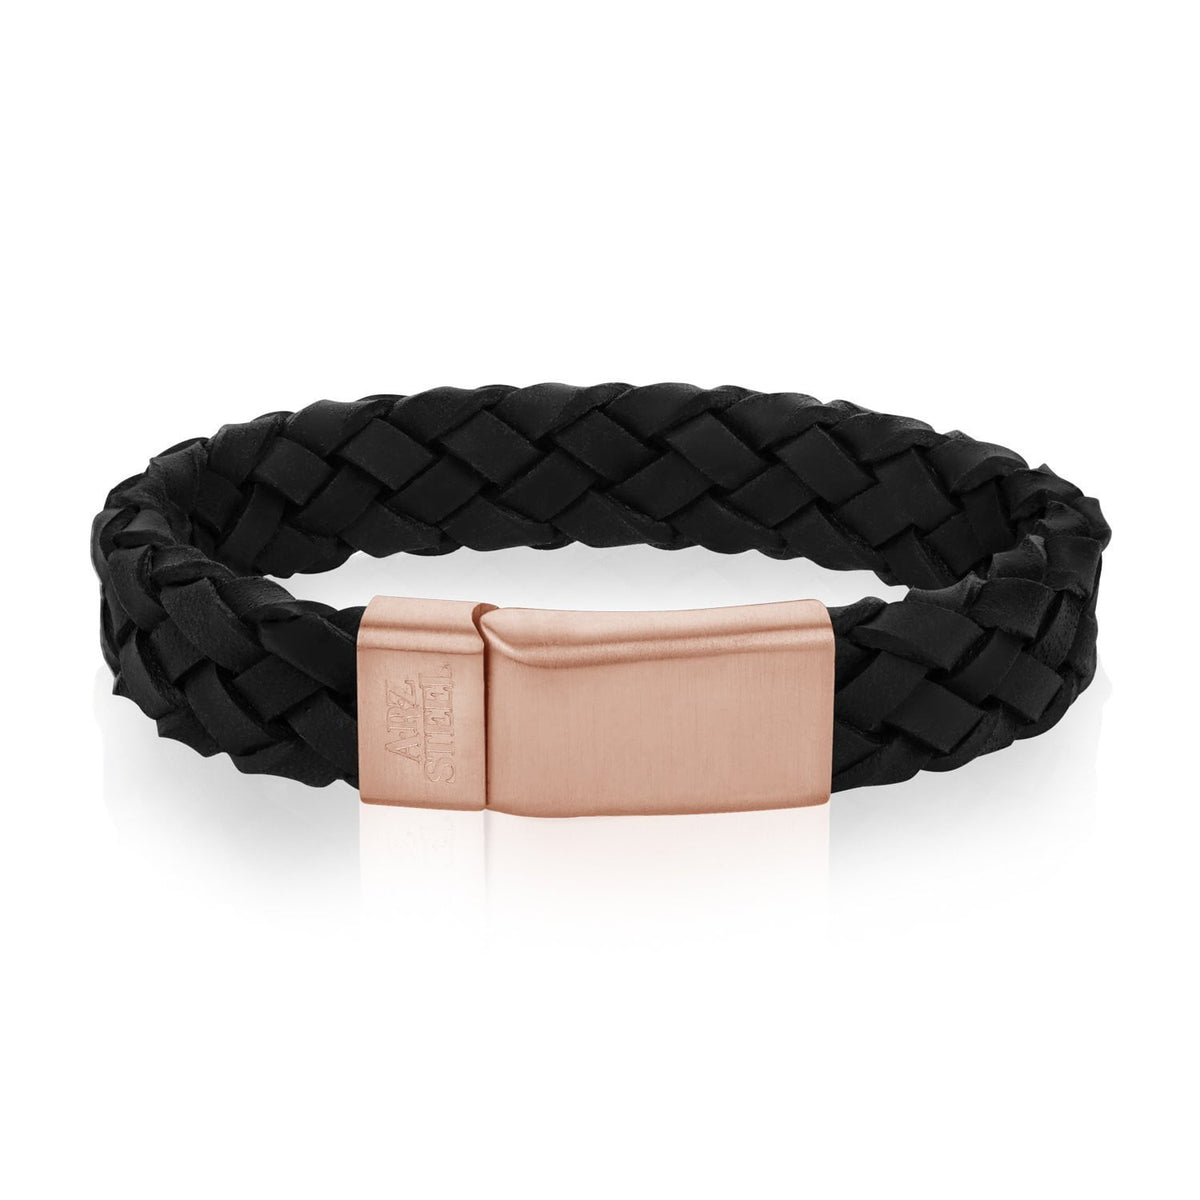 A.R.Z Steel - Black Plaited Leather Rose Gold Clasp Bracelet